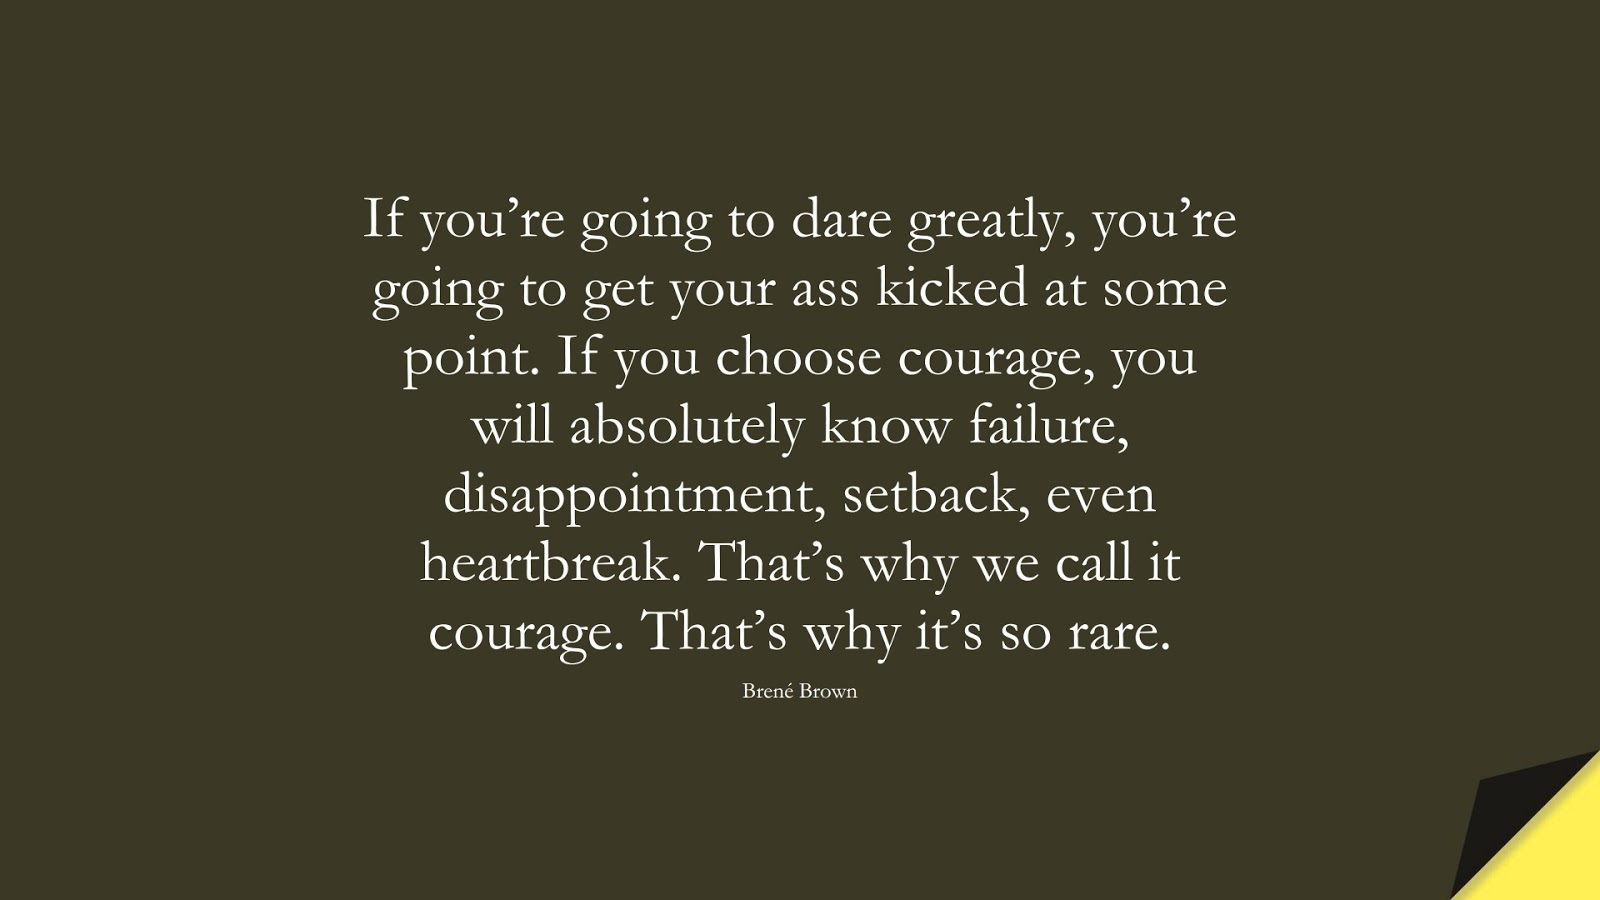 If you're going to dare greatly, you're going to get your ass kicked at some point. If you choose courage, you will absolutely know failure, disappointment, setback, even heartbreak. That's why we call it courage. That's why it's so rare. (Brené Brown);  #CourageQuotes